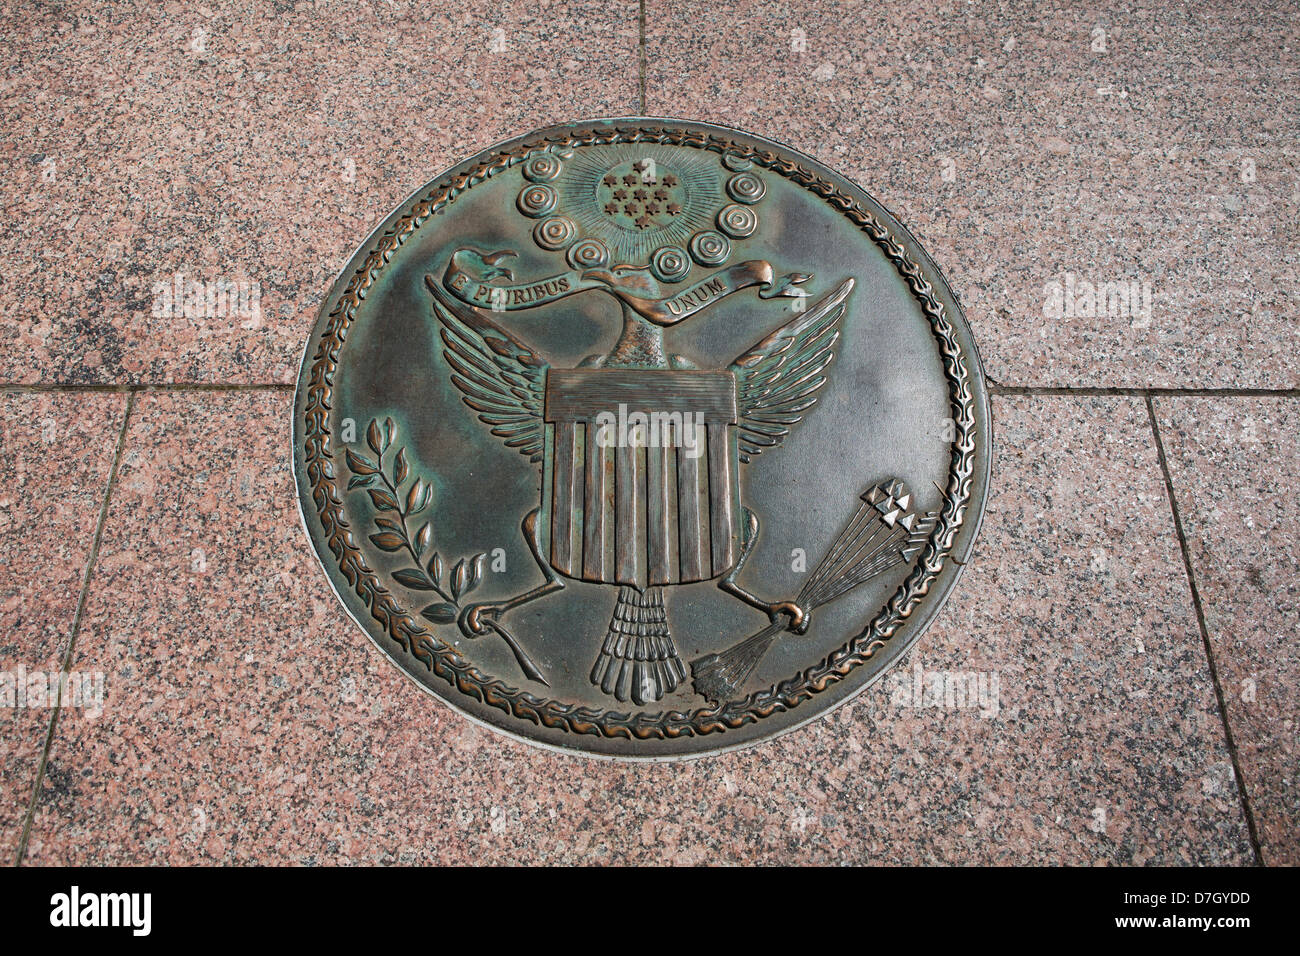 Obverse view of The great seal of the United States, 1782 design, Freedom Plaza, Washington DC - Stock Image